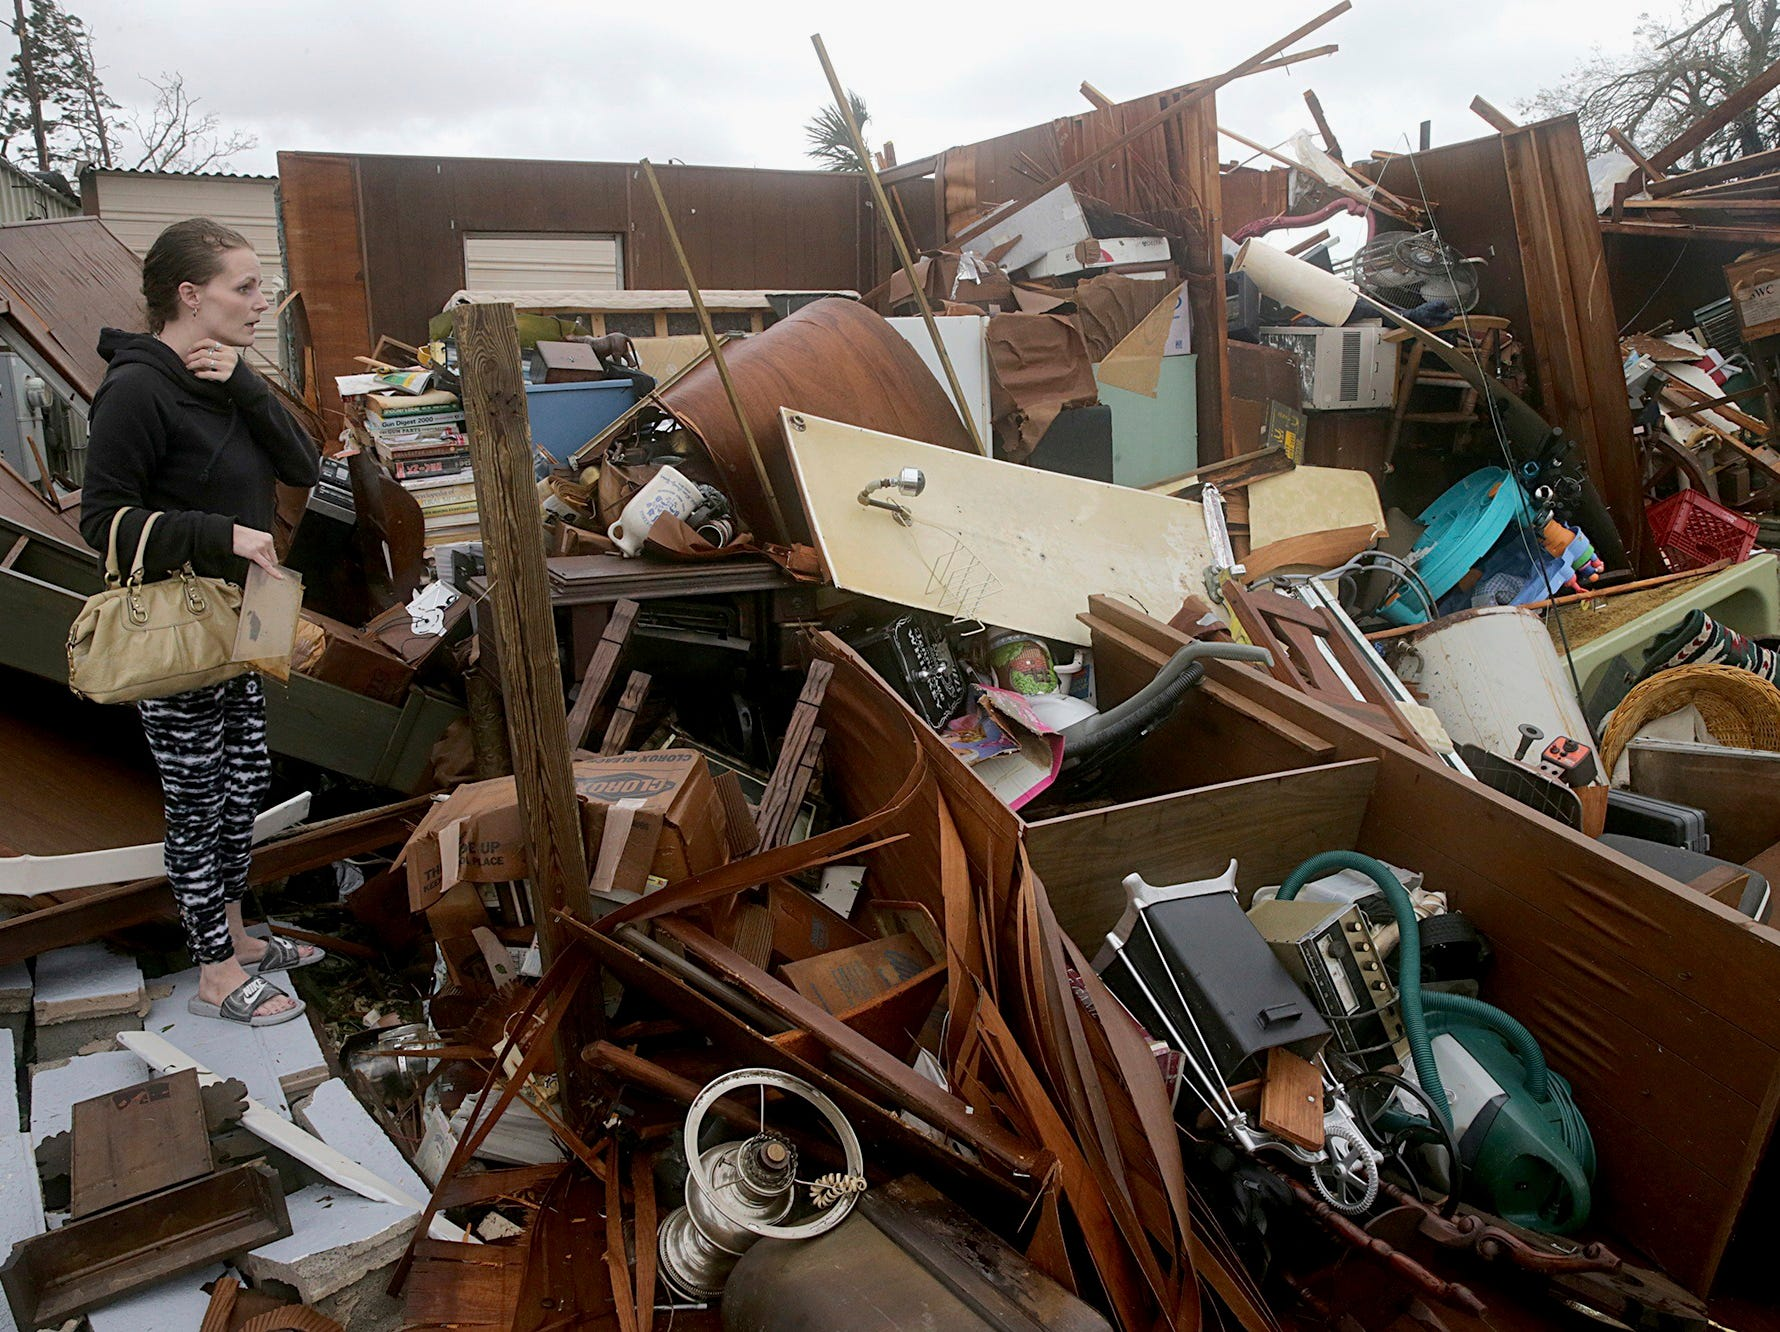 Haley Nelson inspects damages to her family properties in the Panama City, Fla., spring field area after Hurricane Michael made landfall in Florida's Panhandle on Wednesday, Oct. 10, 2018. Supercharged by abnormally warm waters in the Gulf of Mexico, Hurricane Michael slammed into the Florida Panhandle with terrifying winds of 155 mph Wednesday, splintering homes and submerging neighborhoods before continuing its march inland.